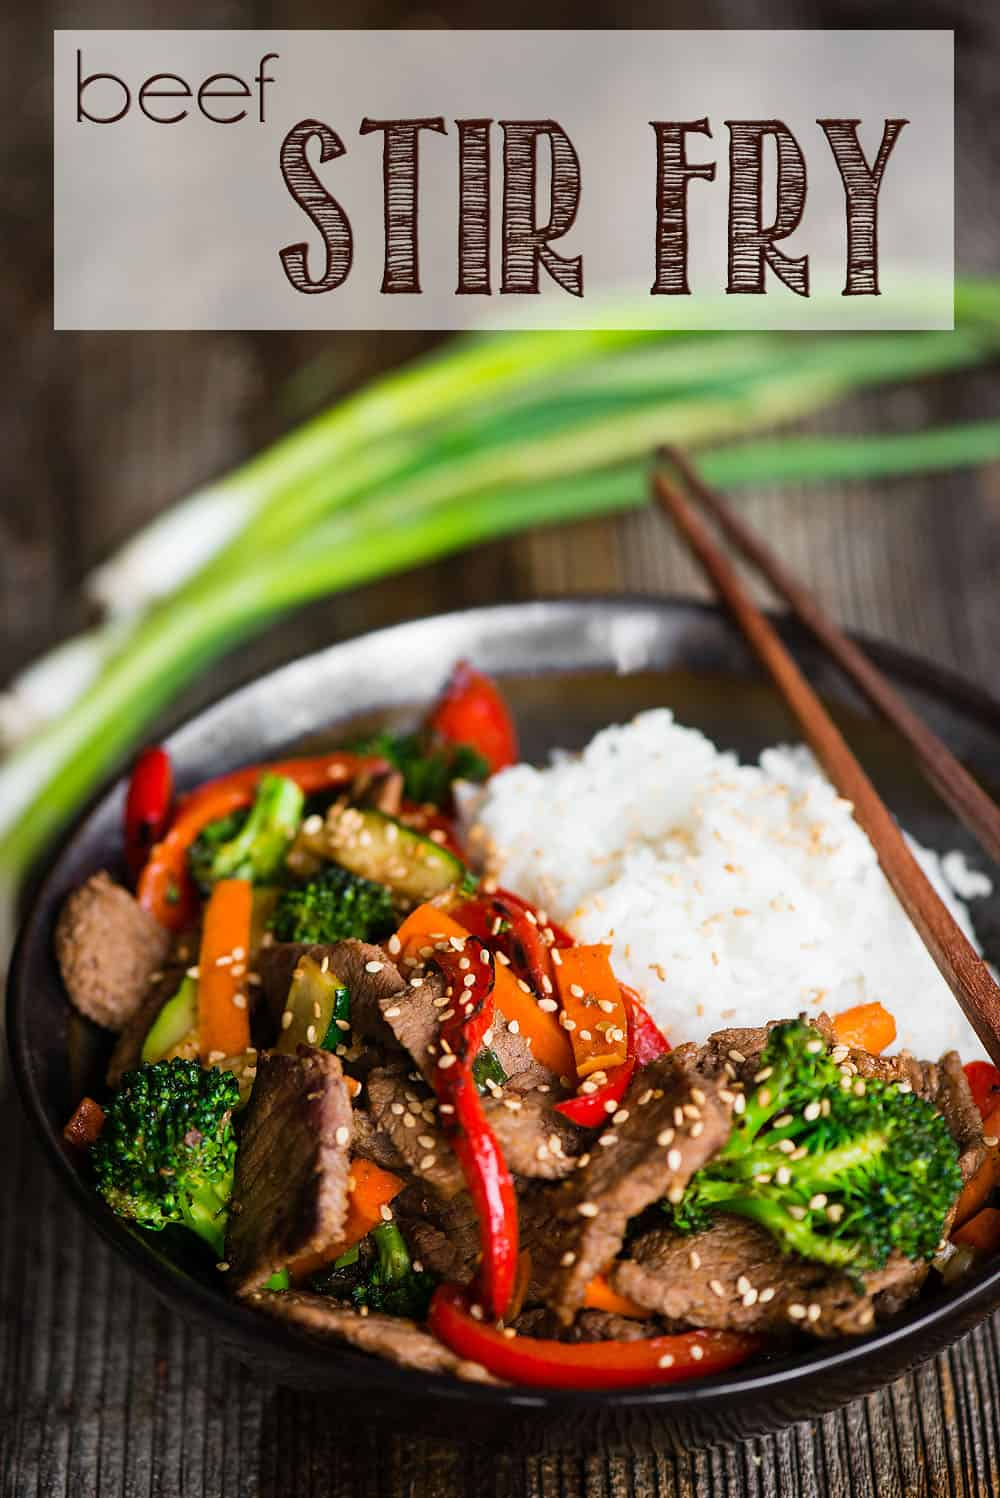 Beef Stir Fry with white rice in bowl